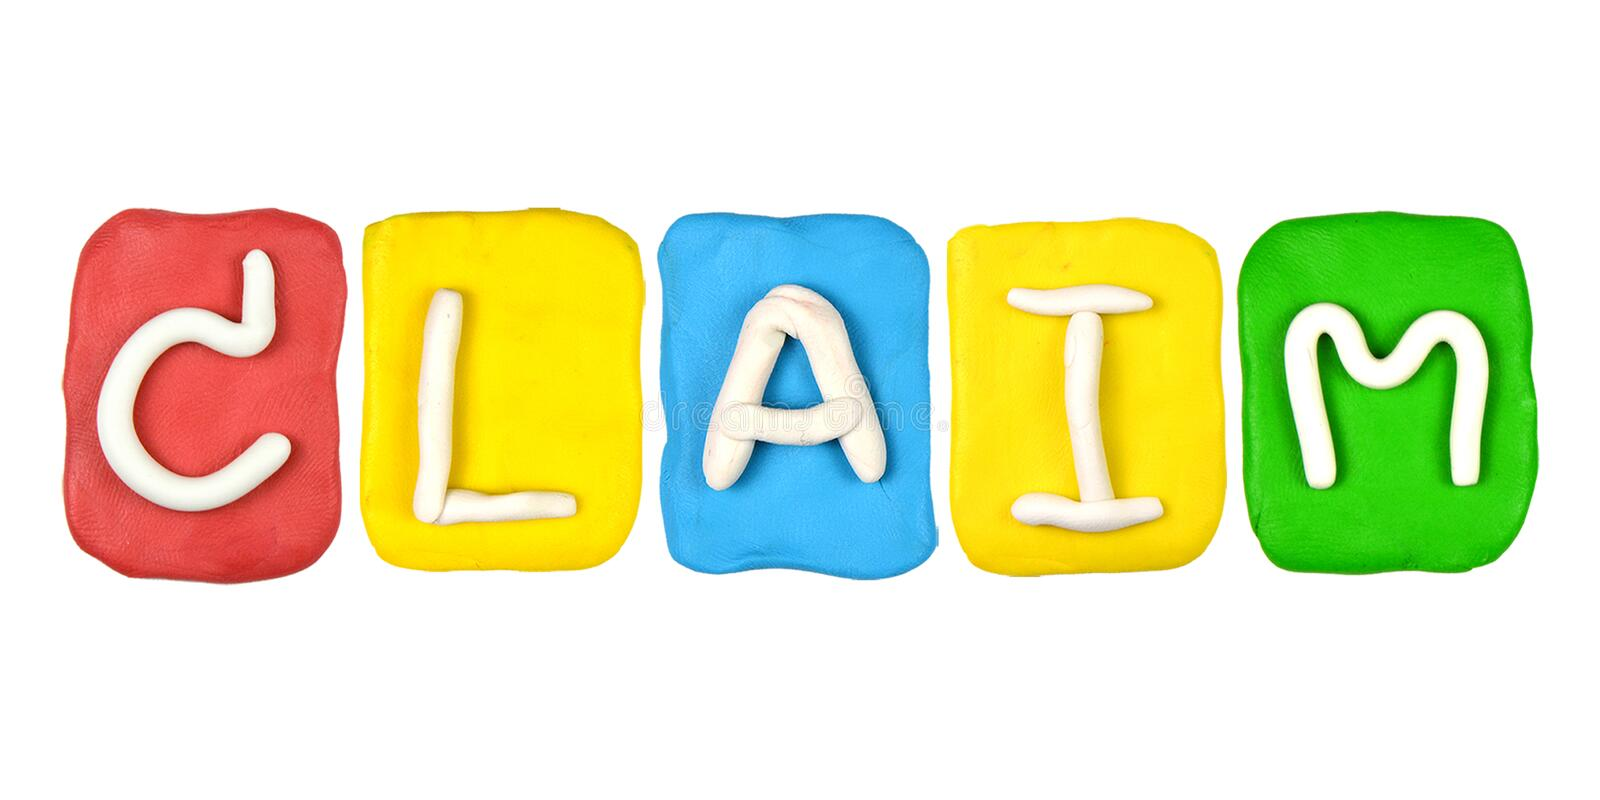 Plasticine Alphabet Form Word Claim Stock Photos - Image: 32661793